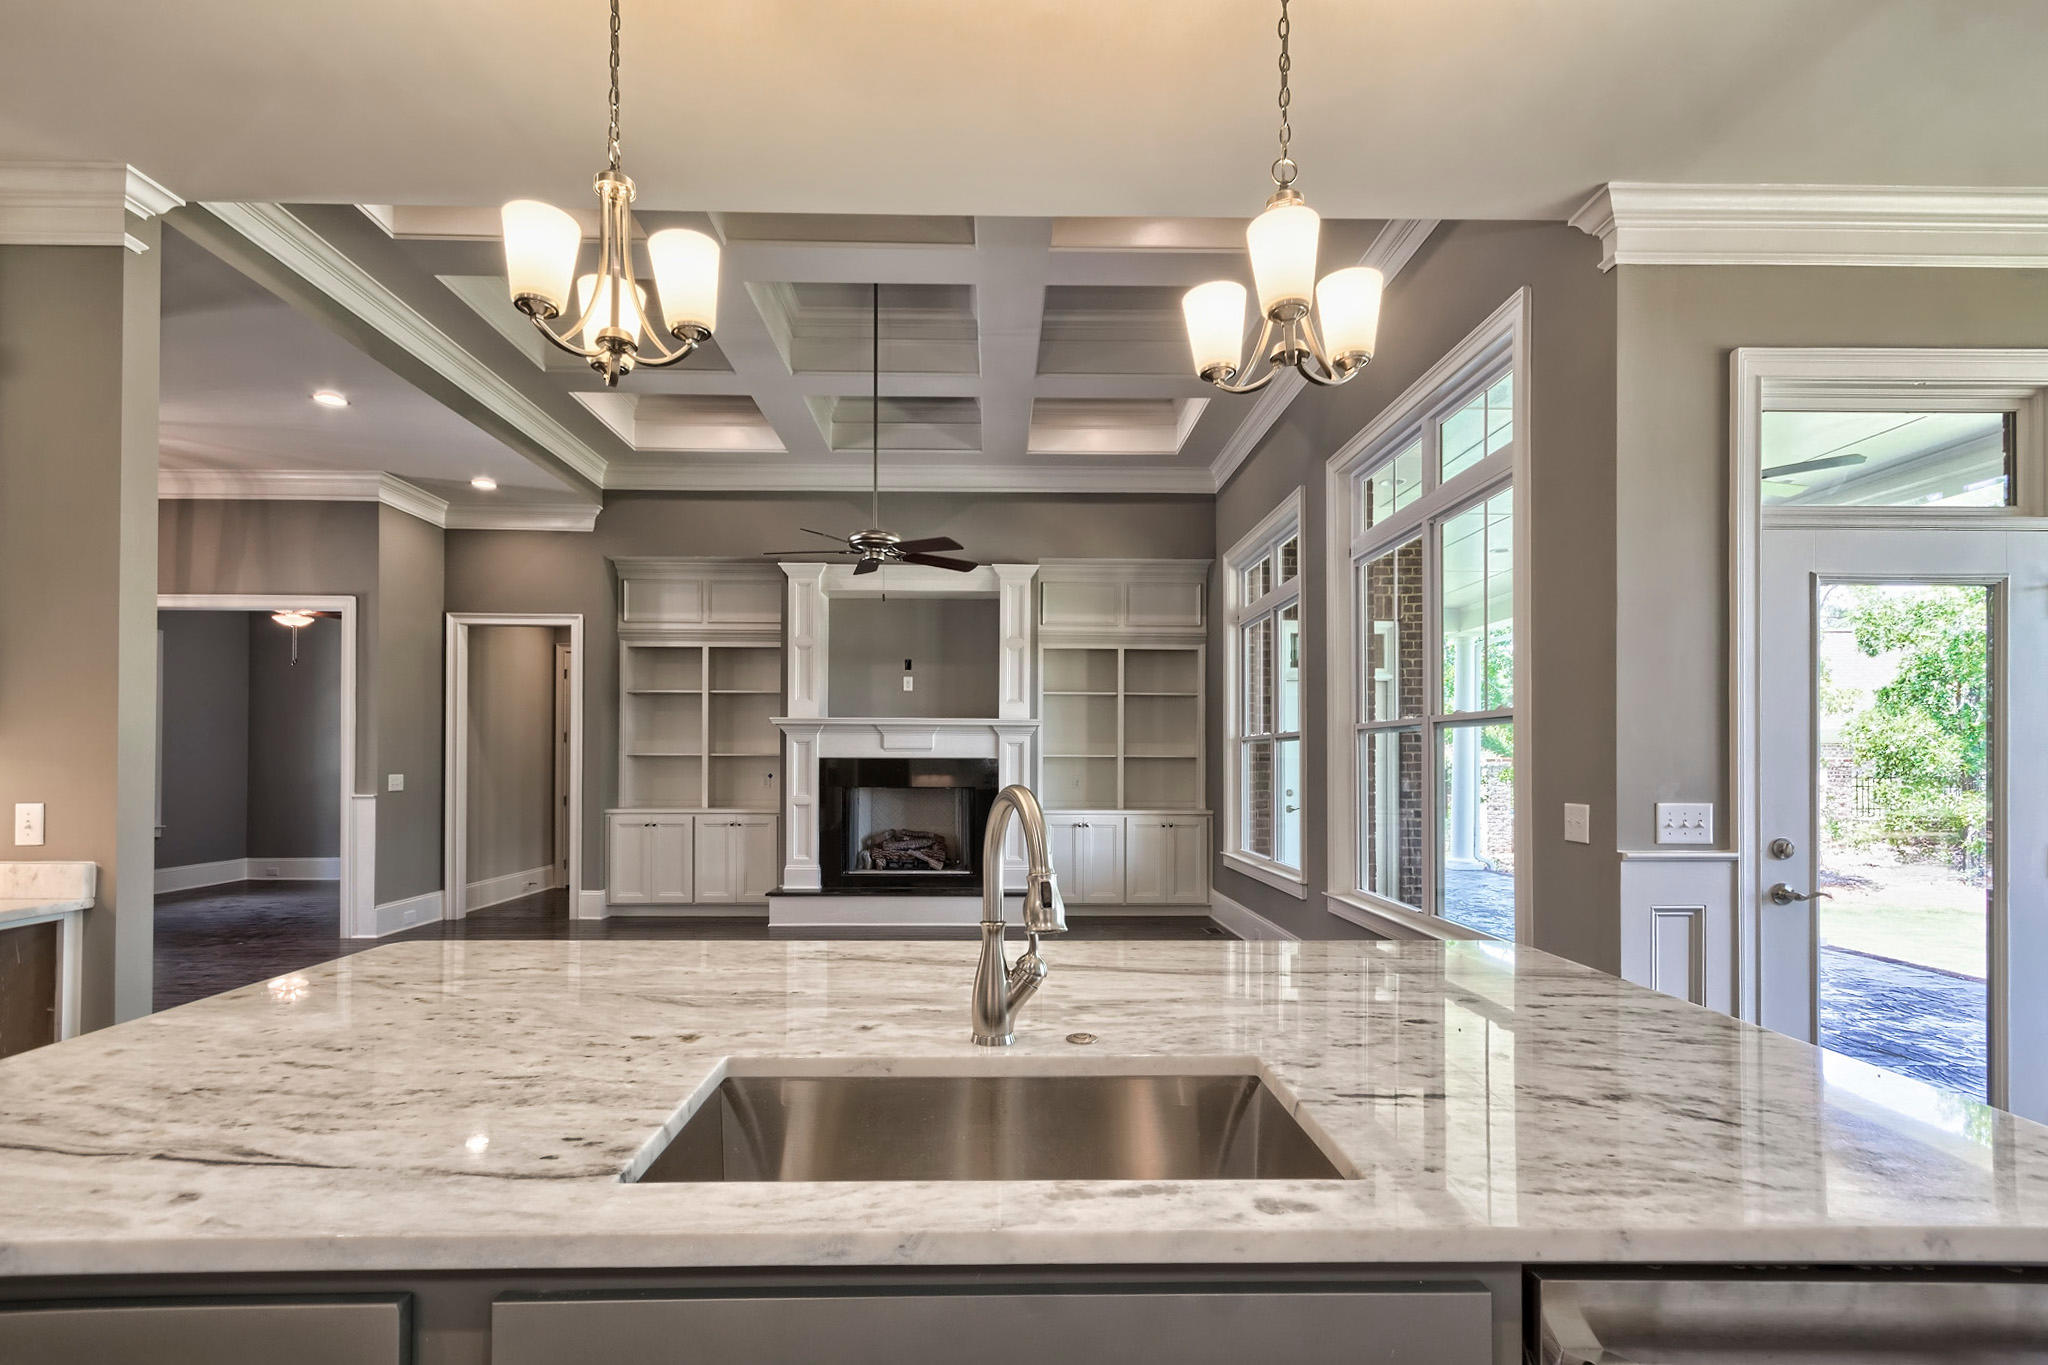 Woodcreek Farms Luxury Homes Executive Construction Homes image 19